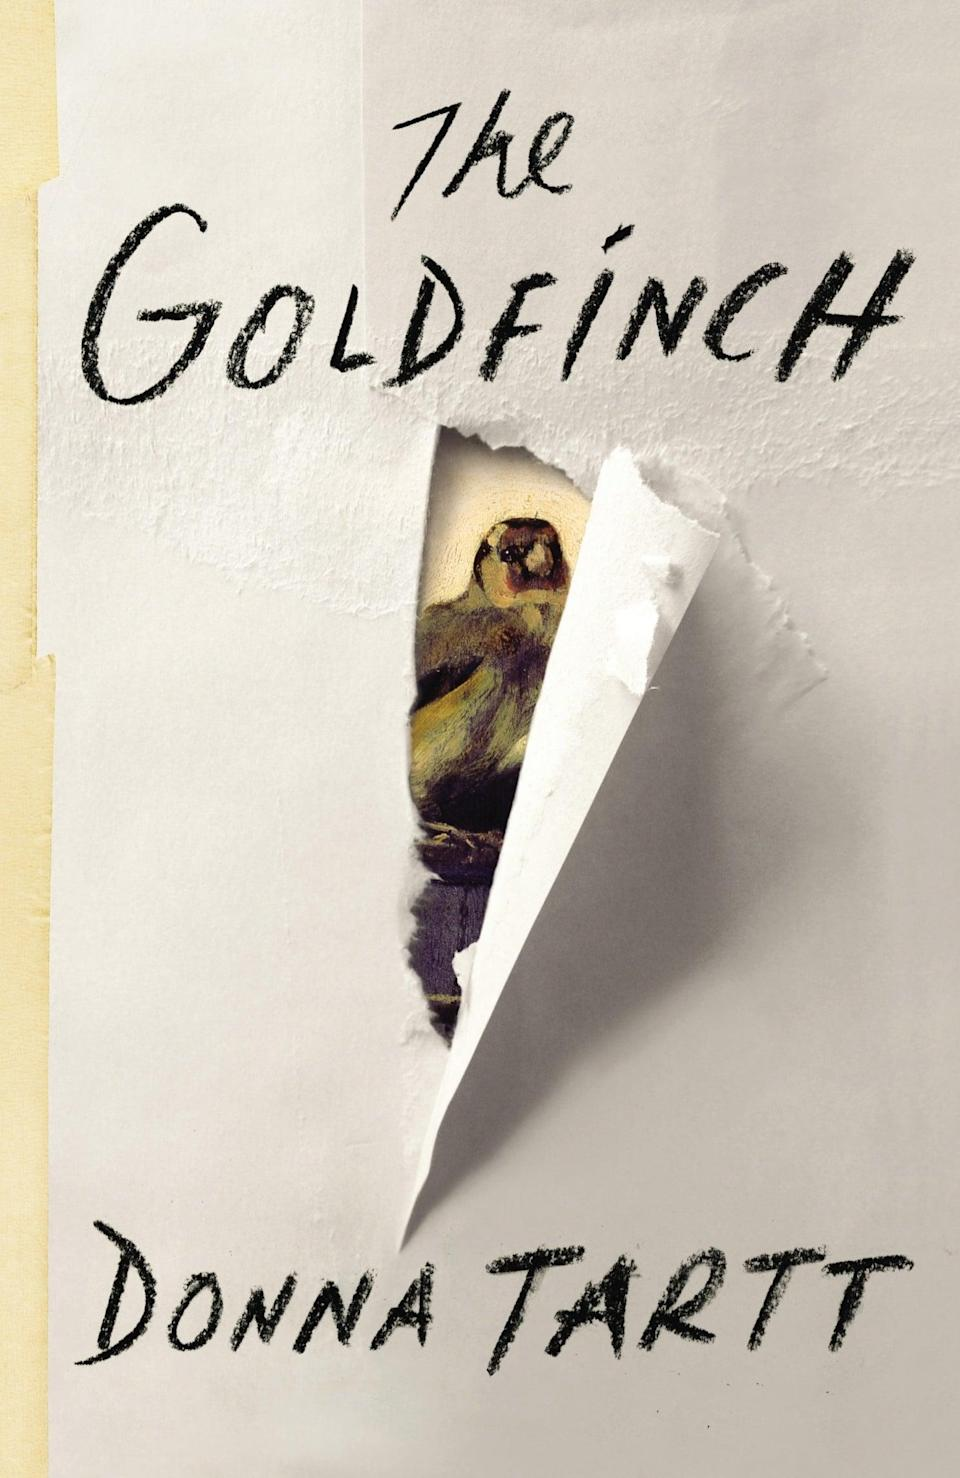 "<p><a href=""https://www.popsugar.com/buy?url=https%3A%2F%2Fwww.amazon.com%2FGoldfinch-Novel-Pulitzer-Prize-Fiction%2Fdp%2F0316055433%2Fref%3Dtmm_hrd_swatch_0%3F_encoding%3DUTF8%26qid%3D1488992210%26sr%3D1-1&p_name=%3Cb%3EThe%20Goldfinch%3C%2Fb%3E%20by%20Donna%20Tartt&retailer=amazon.com&evar1=tres%3Auk&evar9=43250262&evar98=https%3A%2F%2Fwww.popsugar.com%2Flove%2Fphoto-gallery%2F43250262%2Fimage%2F43252279%2FGoldfinch-Donna-Tartt&list1=books%2Cwomen%2Creading%2Cinternational%20womens%20day%2Cwomens%20history%20month&prop13=api&pdata=1"" class=""link rapid-noclick-resp"" rel=""nofollow noopener"" target=""_blank"" data-ylk=""slk:The Goldfinch by Donna Tartt""><b>The Goldfinch</b> by Donna Tartt</a></p>"